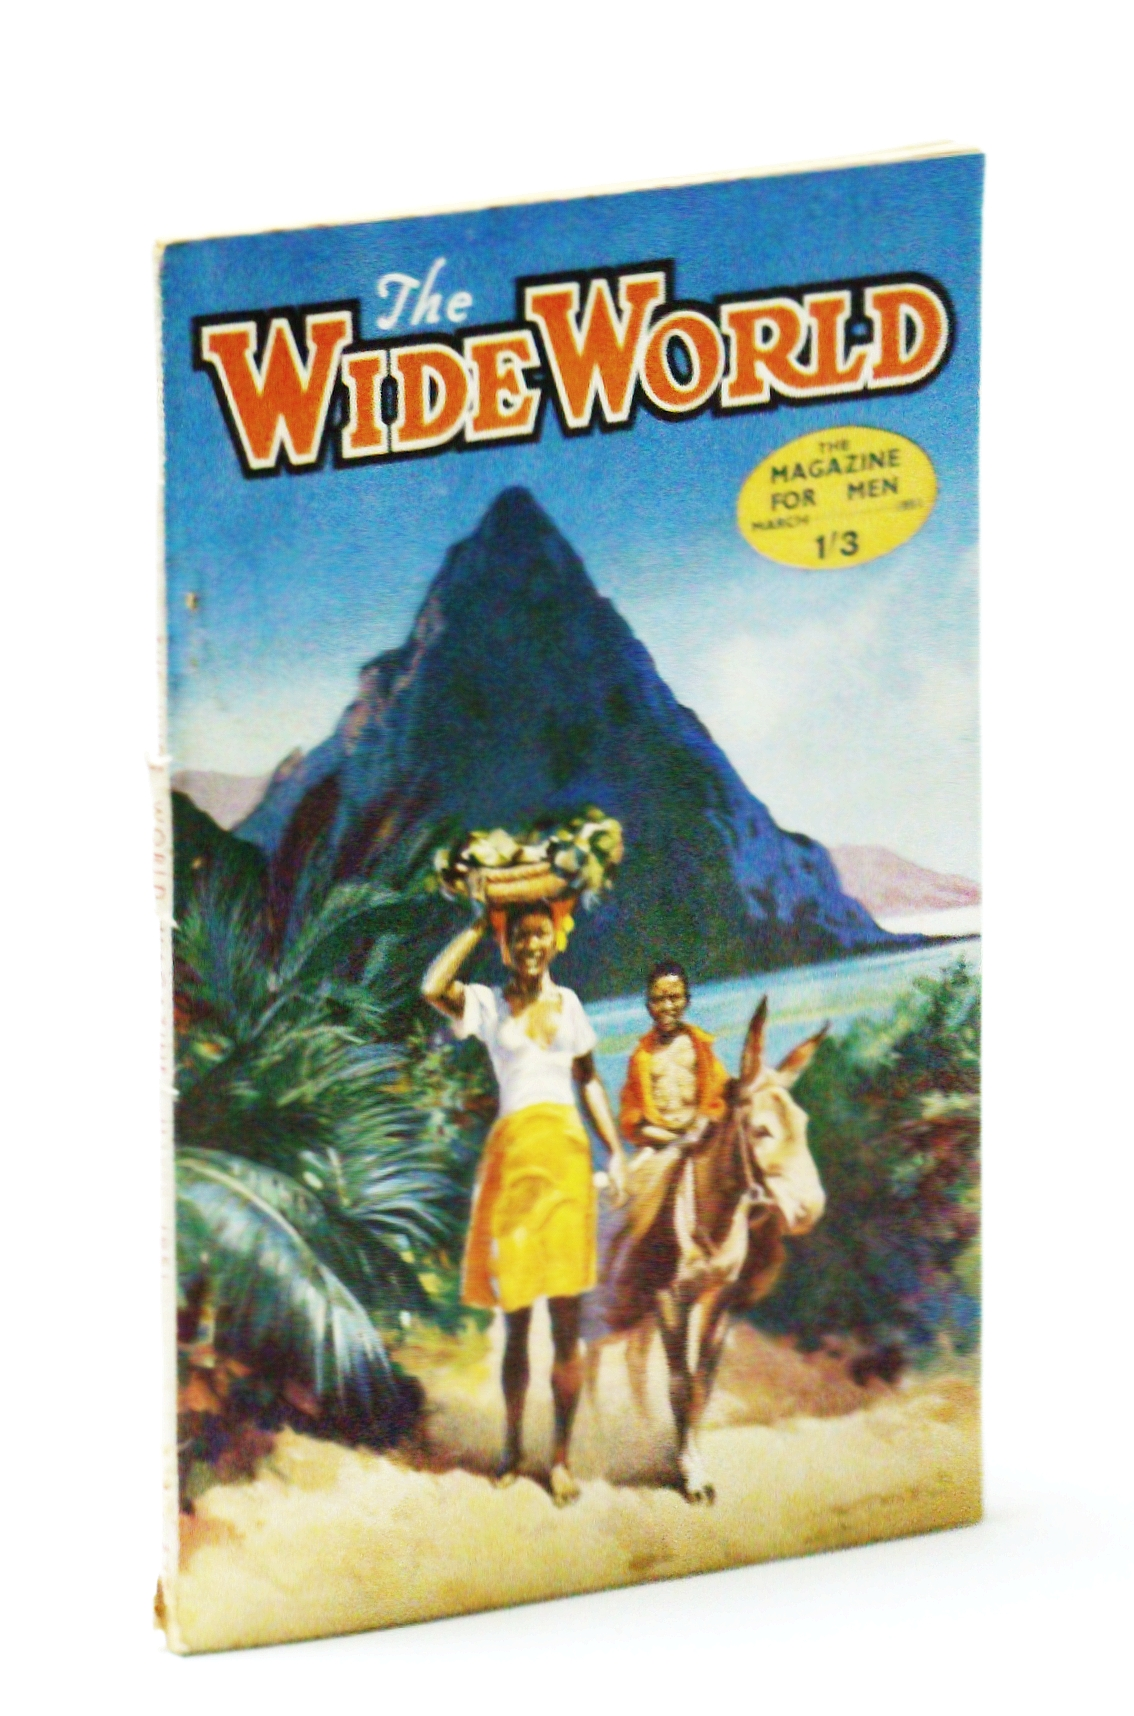 Image for The Wide World - The Magazine For Men, March (Mar.) 1951 - The Death Patrol